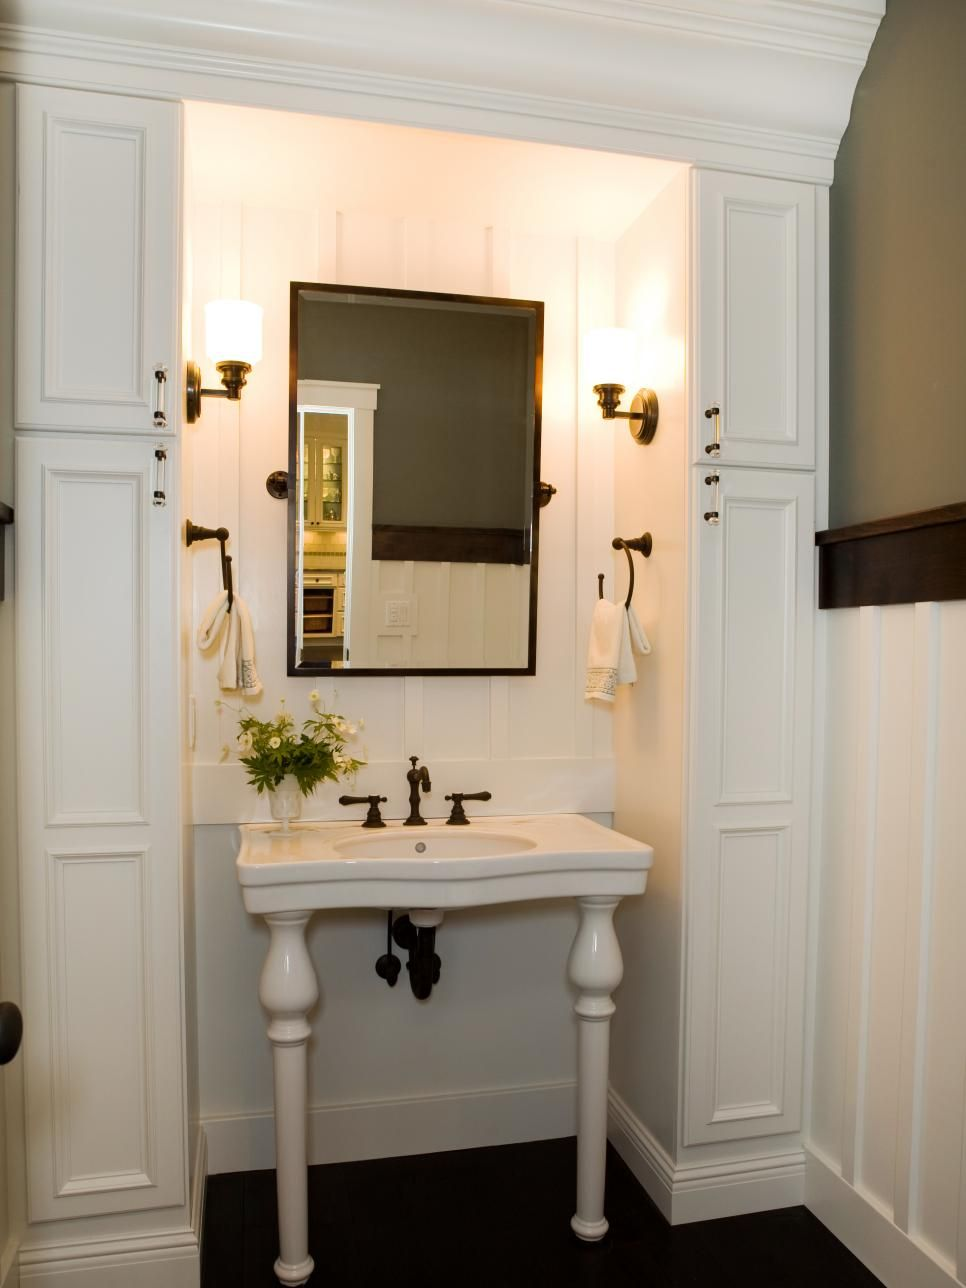 A stylish white pedestal bathroom sink is nestled inside crisp white cabinetry, accented with elegant fixtures.